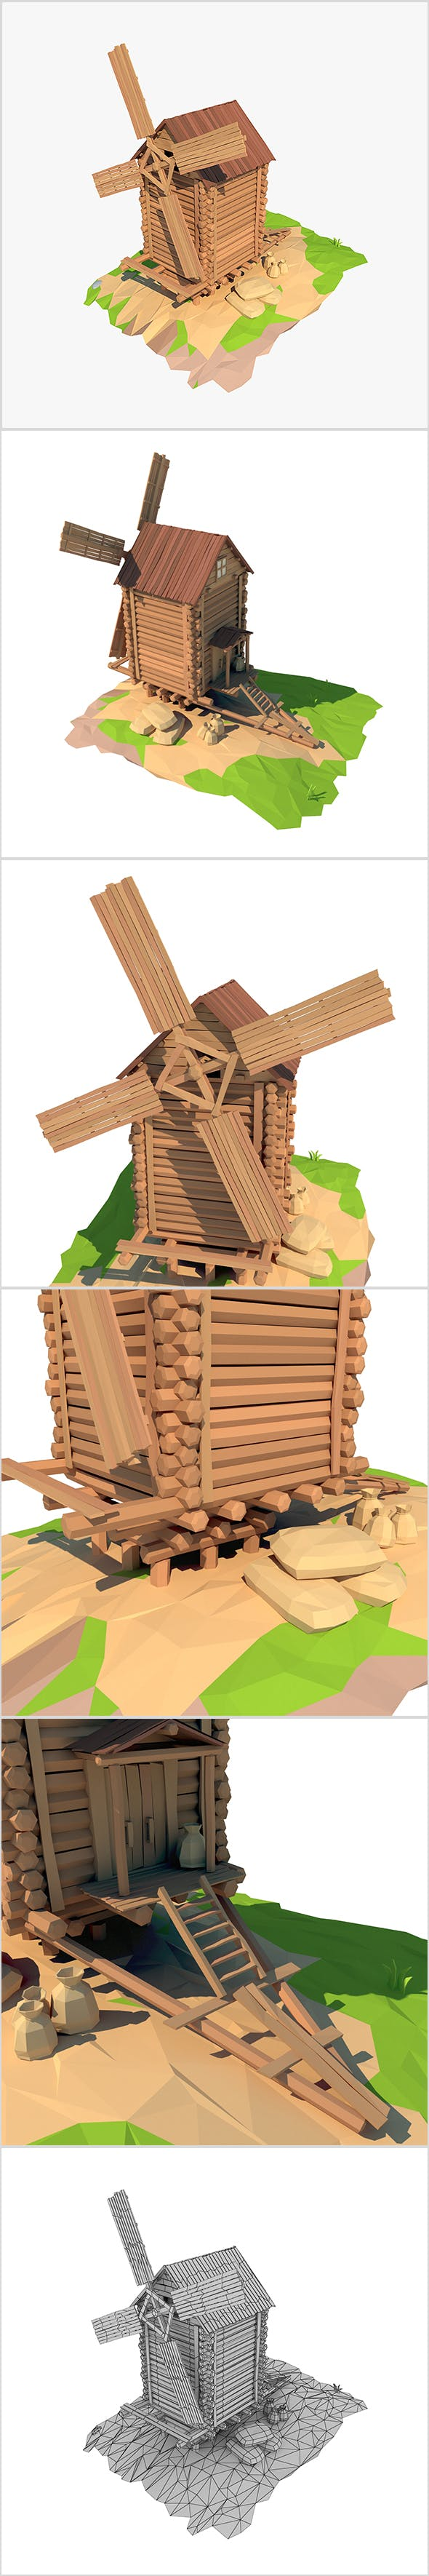 Cartoon wooden windmill - 3DOcean Item for Sale